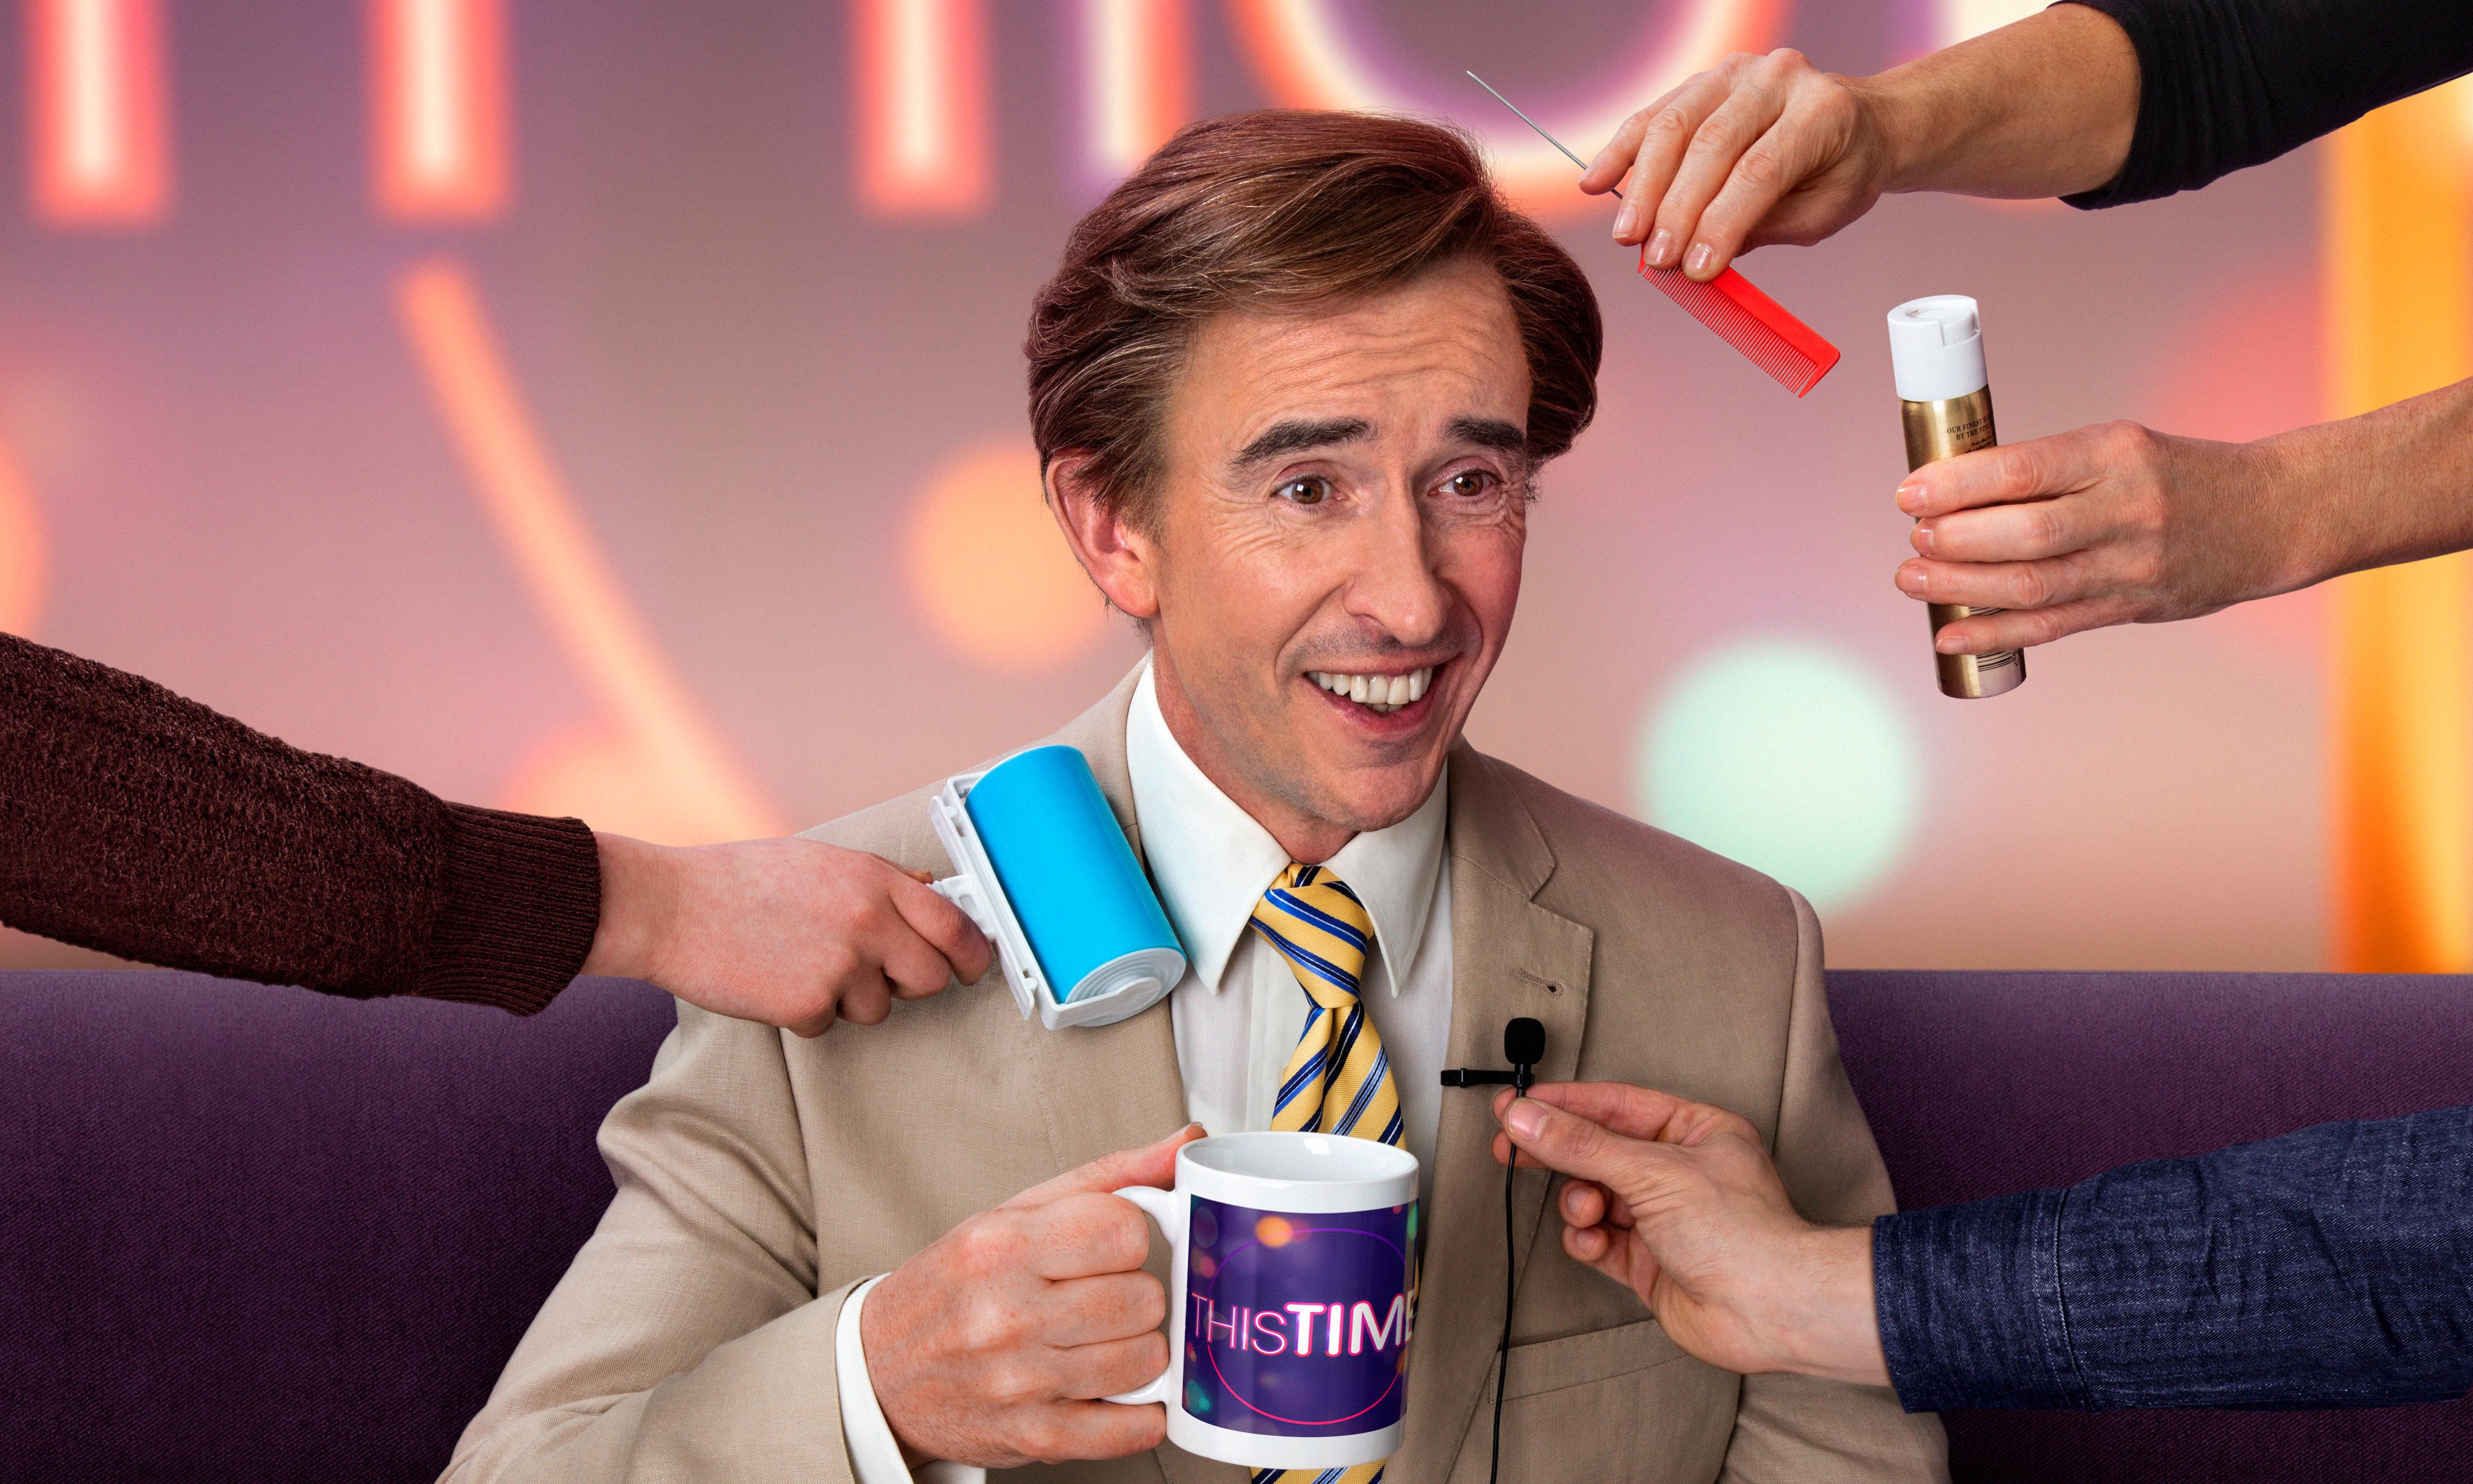 'We've had a love-hate relationship': Steve Coogan on bringing Alan Partridge back to the BBC